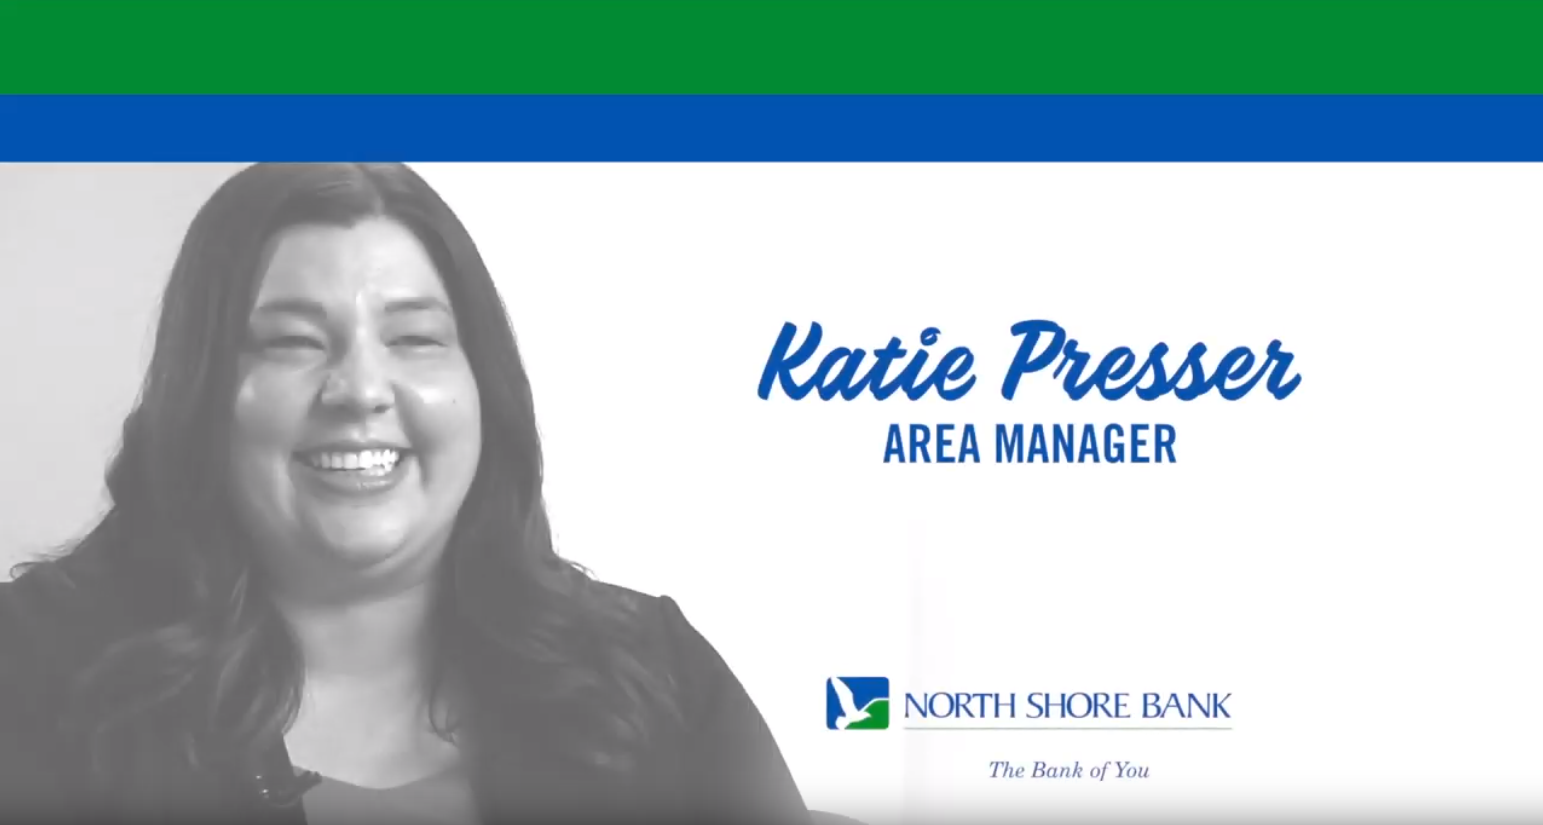 Katie Presser - North Shore Bank Area Manager